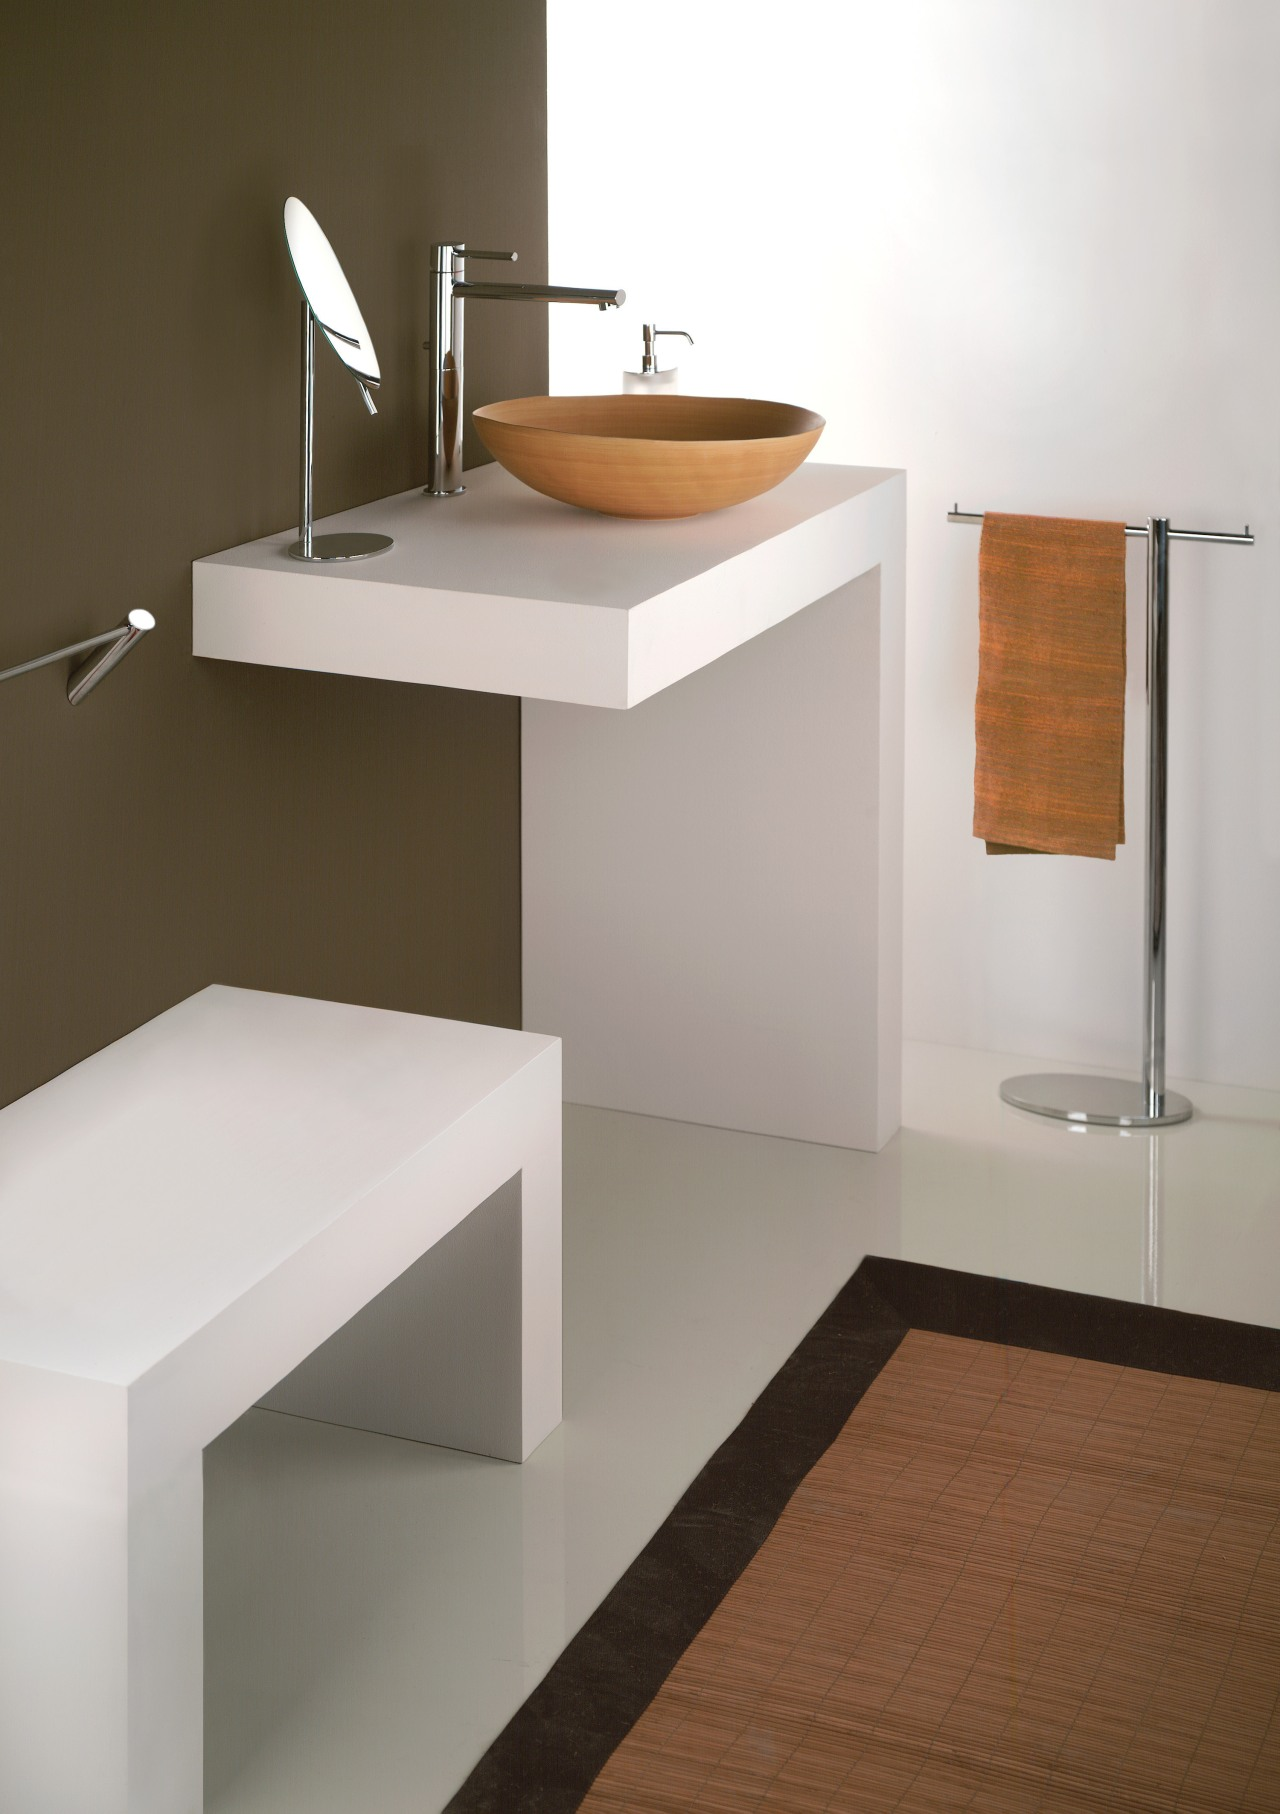 Enduring designs from Gessi include elliptical Ovale faucets angle, bathroom, bathroom accessory, bathroom cabinet, bathroom sink, ceramic, drawer, floor, furniture, interior design, plumbing fixture, product design, shelf, sink, tap, white, brown